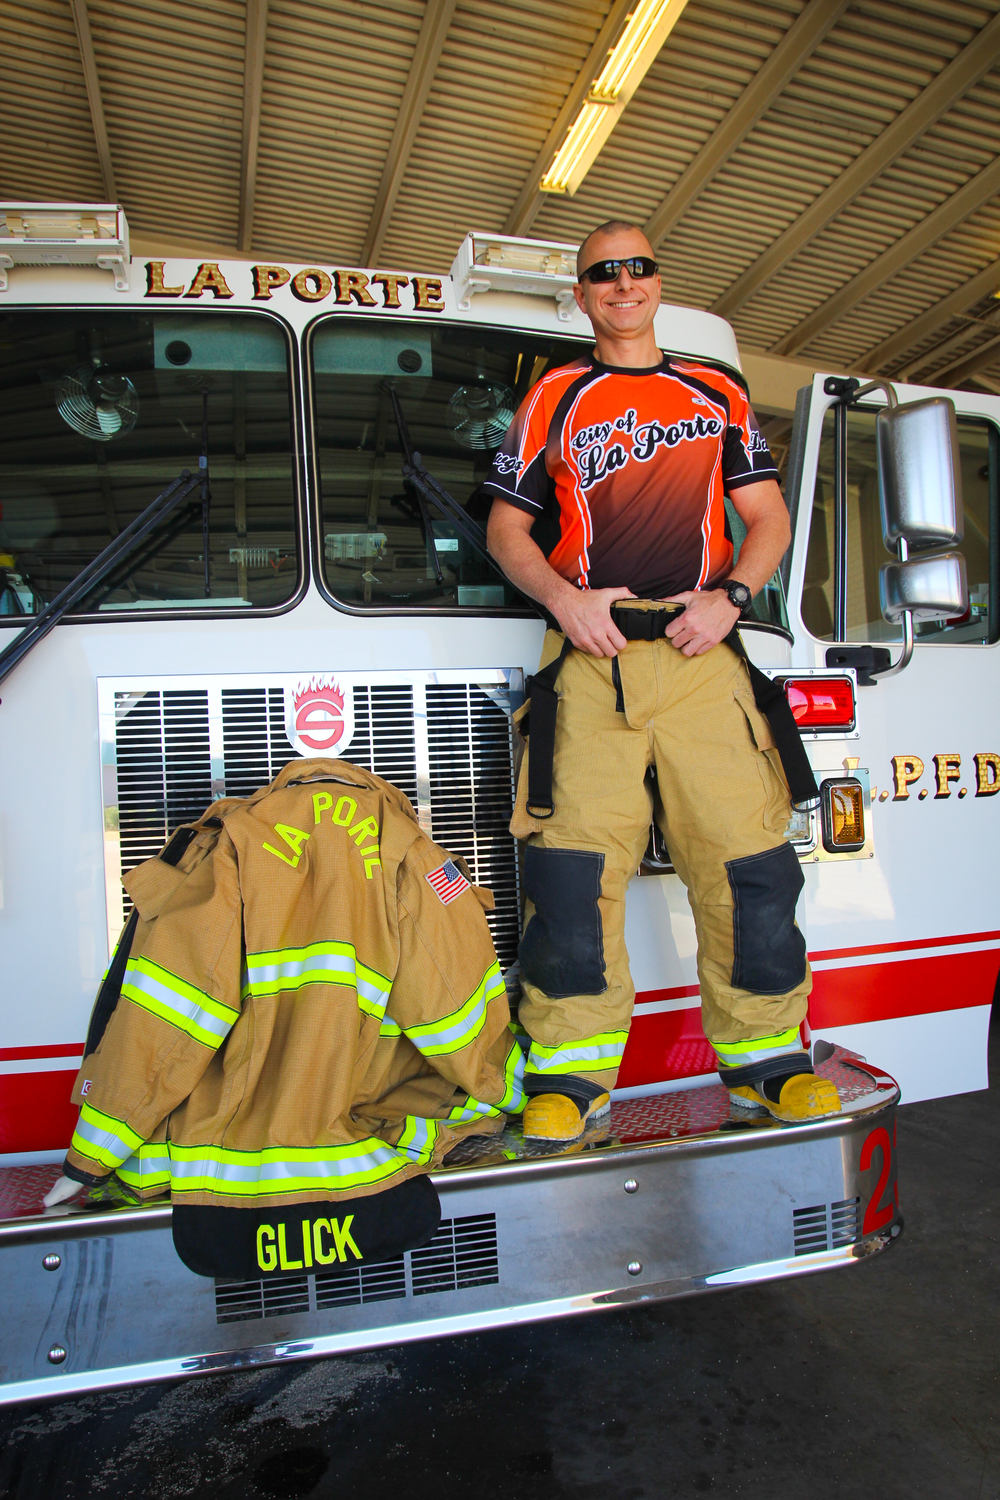 City Of La Porte Firefighter John Glick, an avid ultra runner, is committed to running the 200 miles in its entirety.